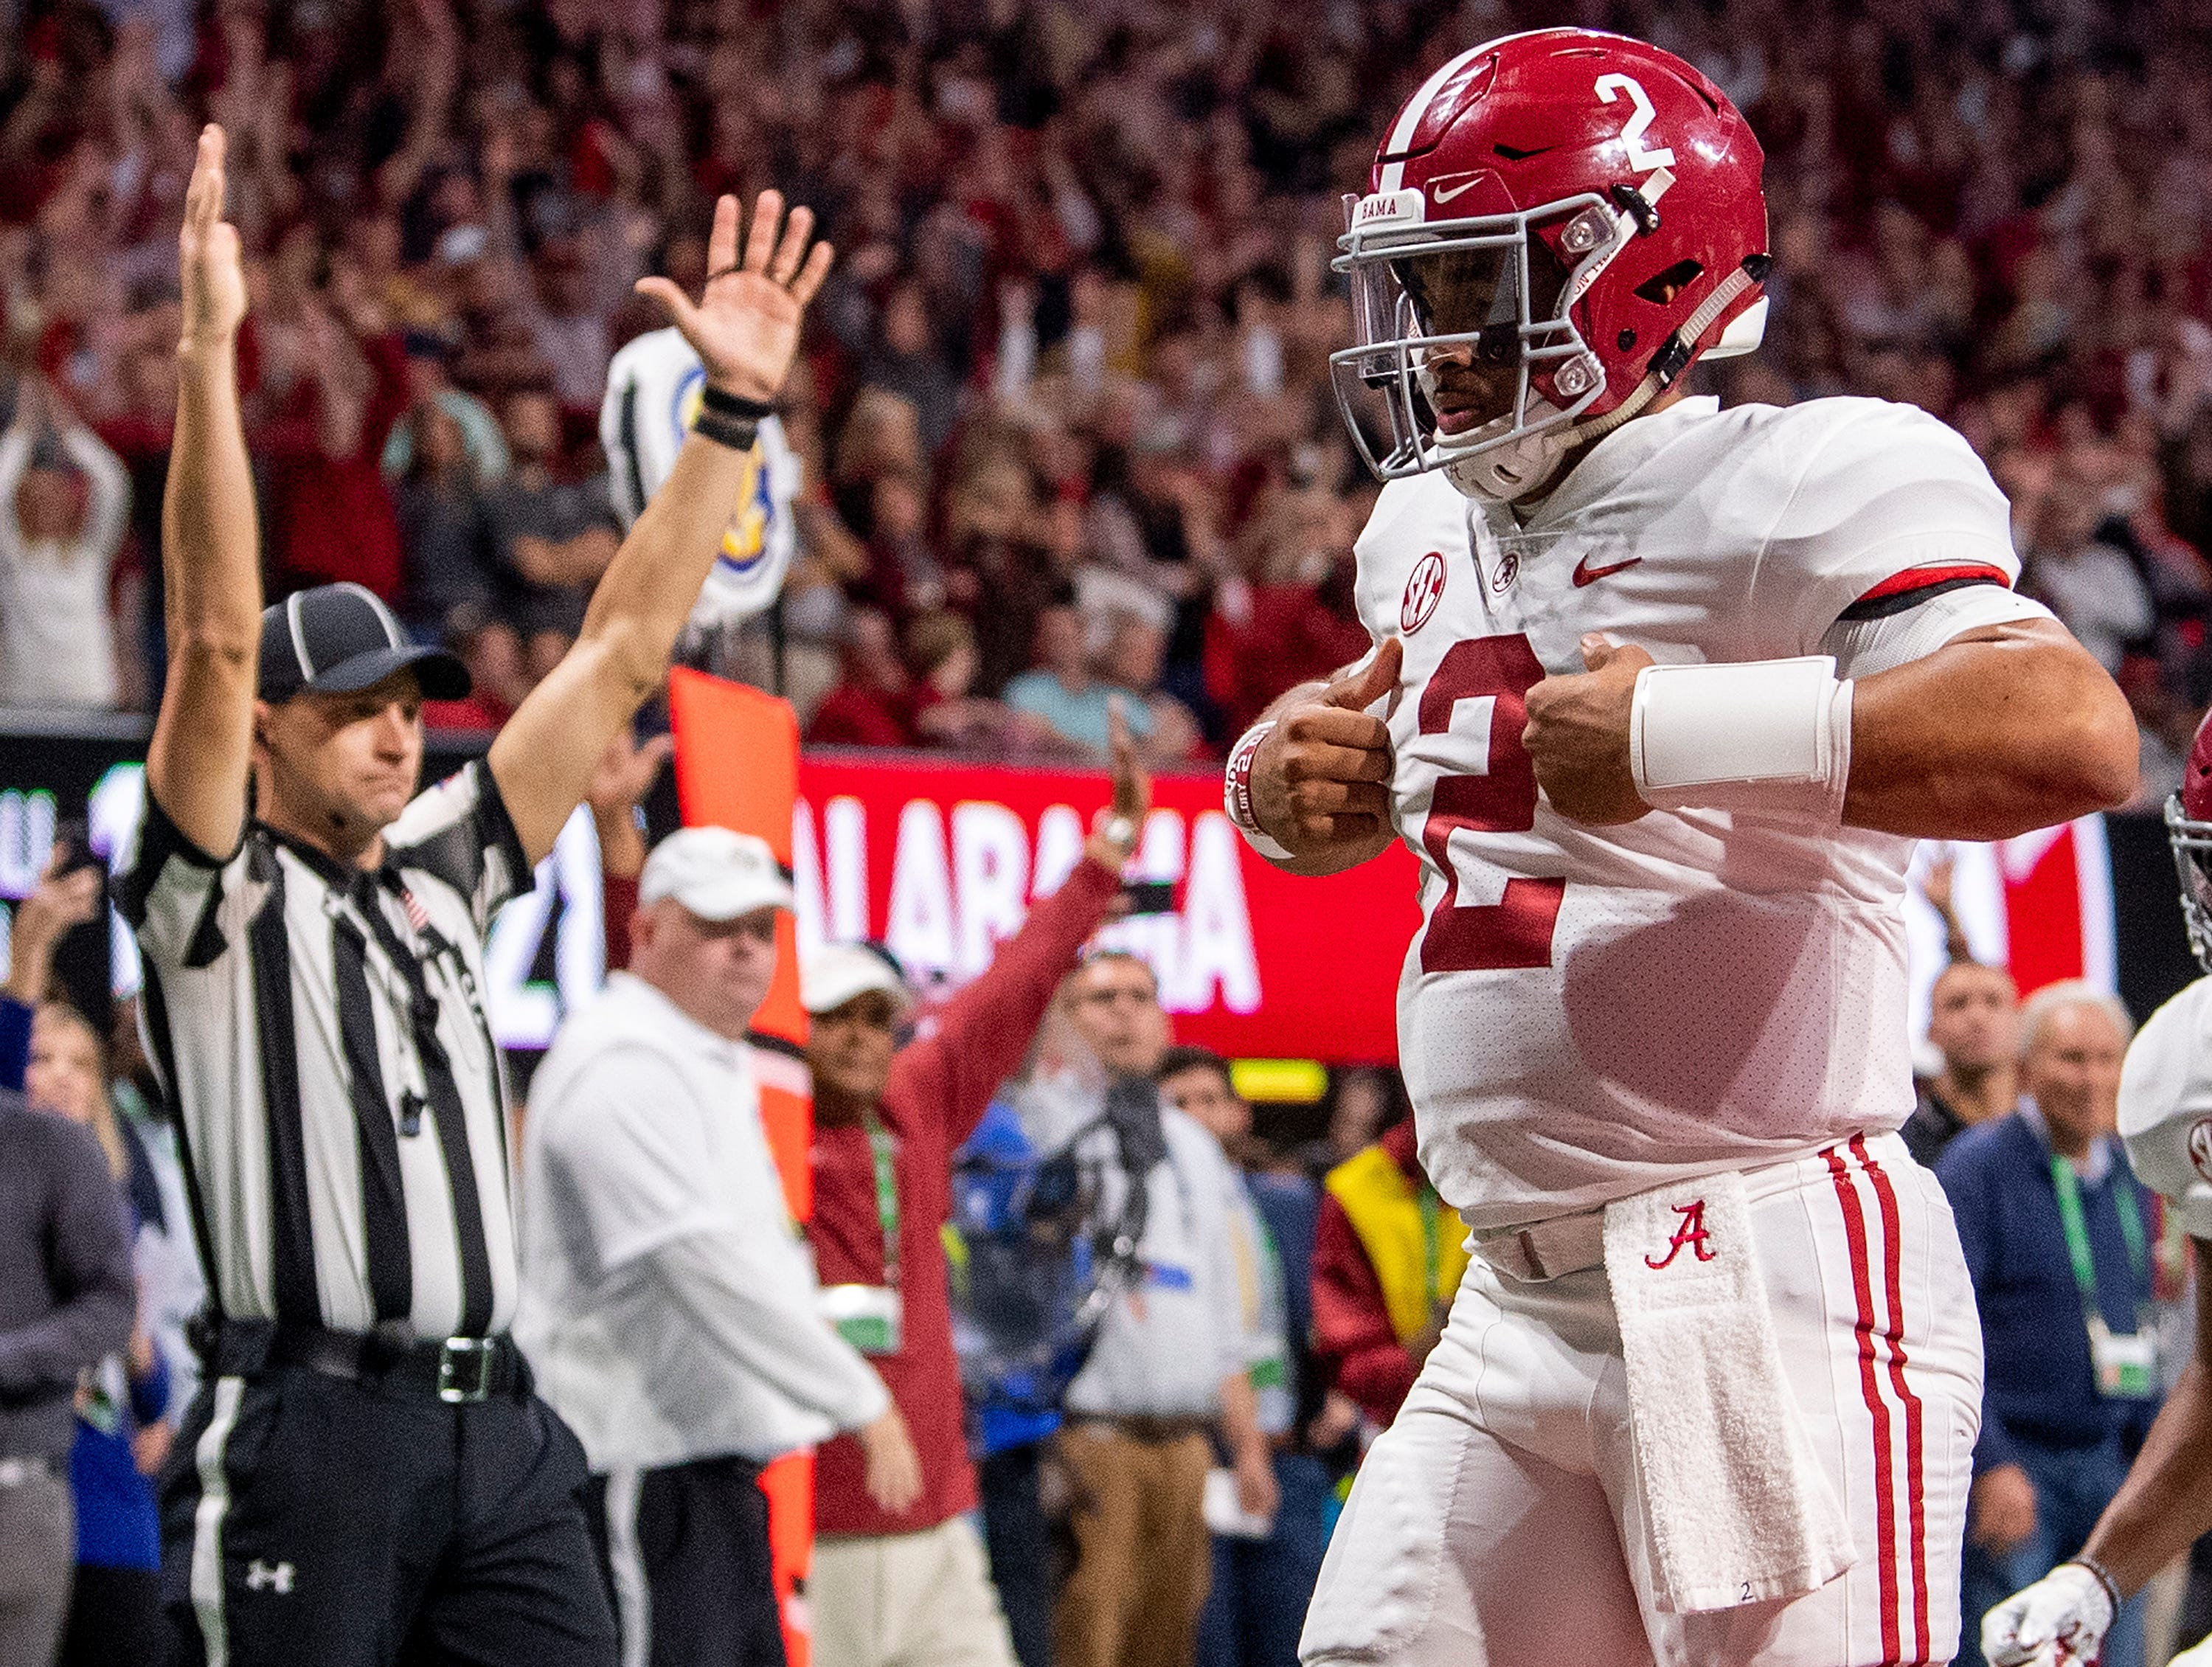 Alabama quarterback Jalen Hurts (2) does the superman after scoring the go ahead touchdown against Georgia in the SEC Championship Game at Mercedes Benz Stadium in Atlanta, Ga., on Saturday December 1, 2018.